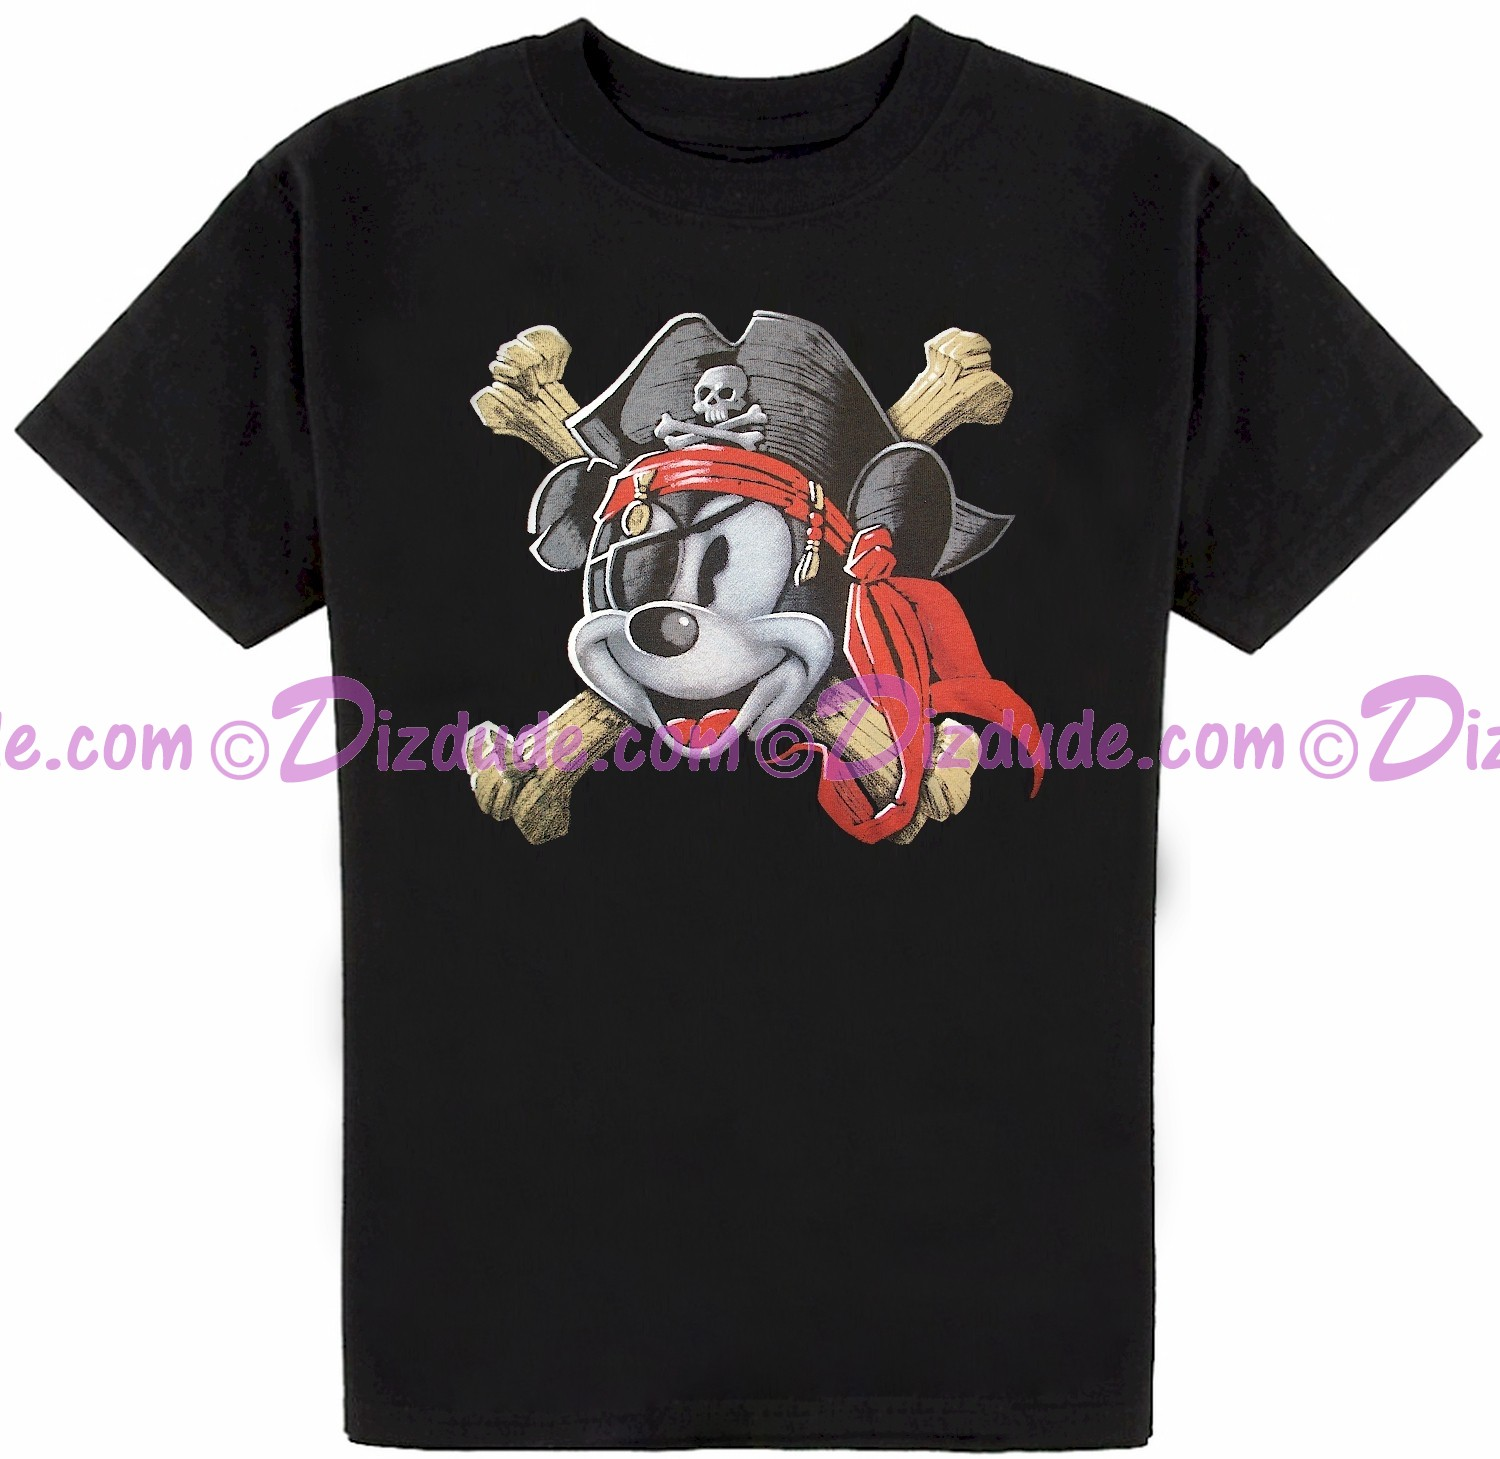 Vintage Pirate Captain Mickey Mouse Youth T-shirt (Tee, Tshirt or T shirt)